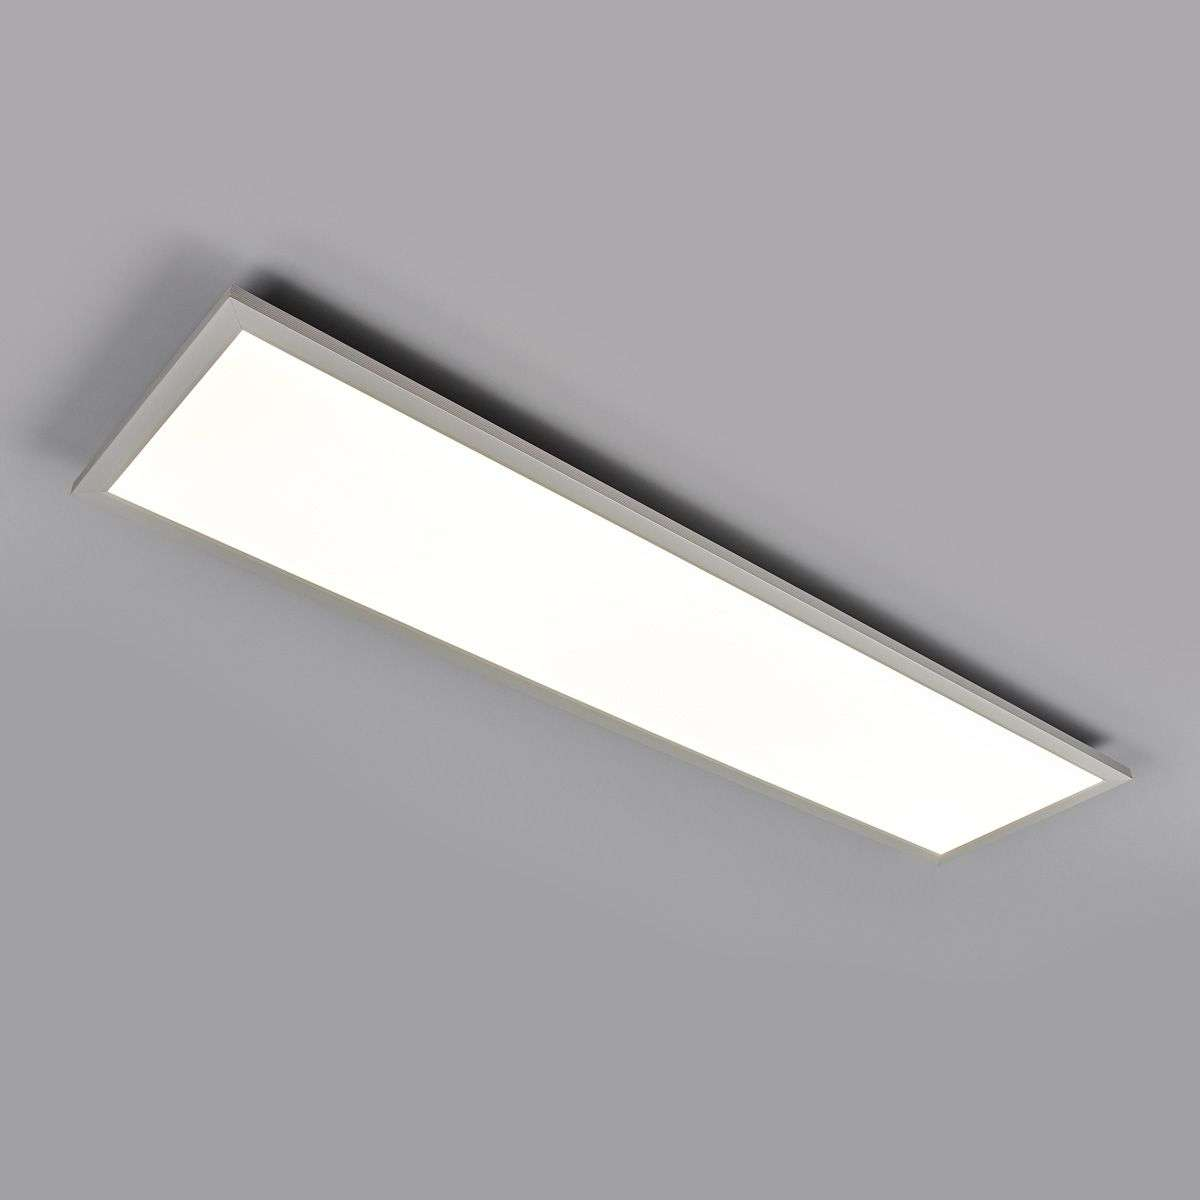 Panneau LED universel All-in-One 40W, LED Osram-3002123X-330